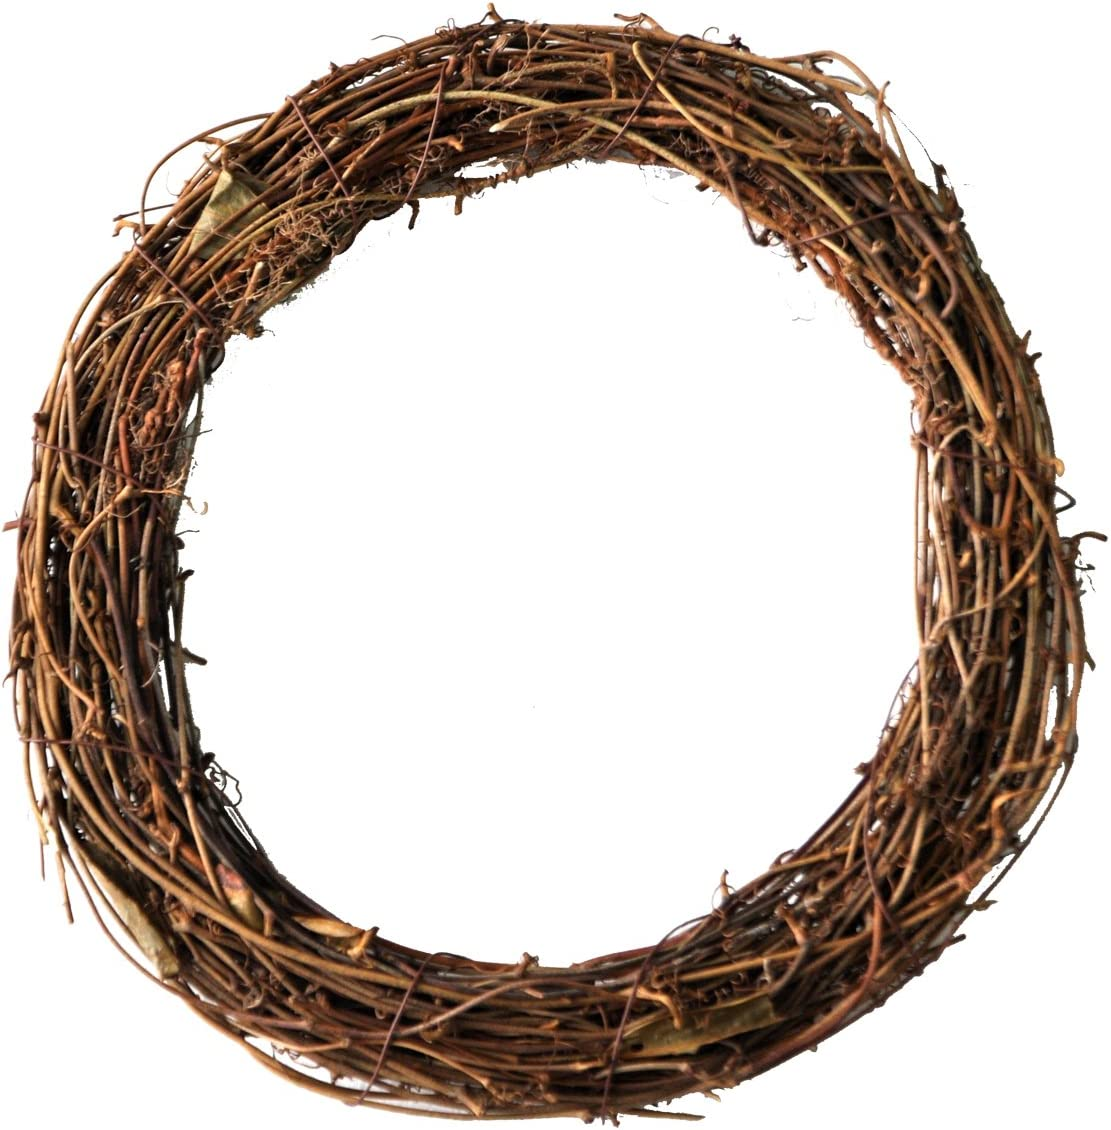 Ougual DIY Crafts Natural Grapevine Wreaths (8 Inch, 4 Pack)